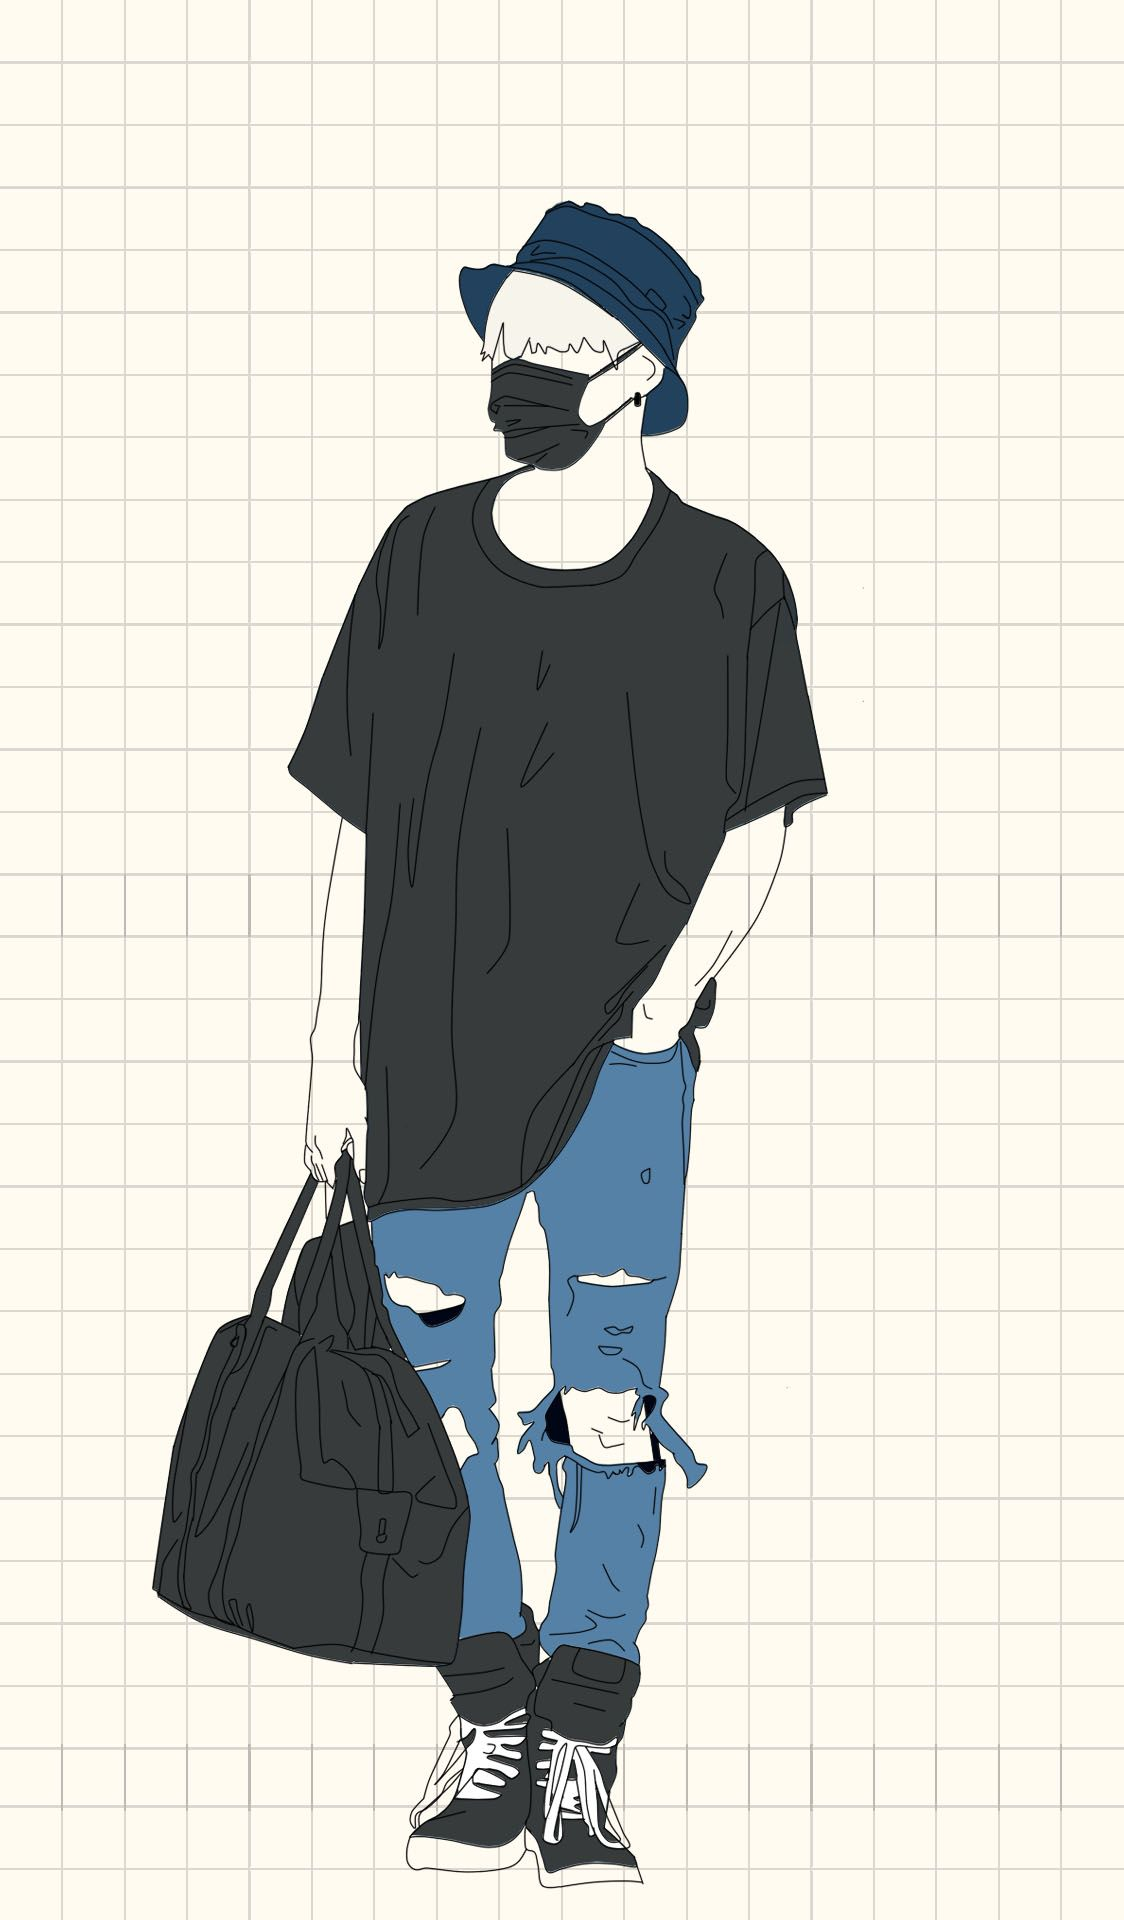 Pin by Oh Sehun on Wallpaper BTS Pinterest BTS, Fanart